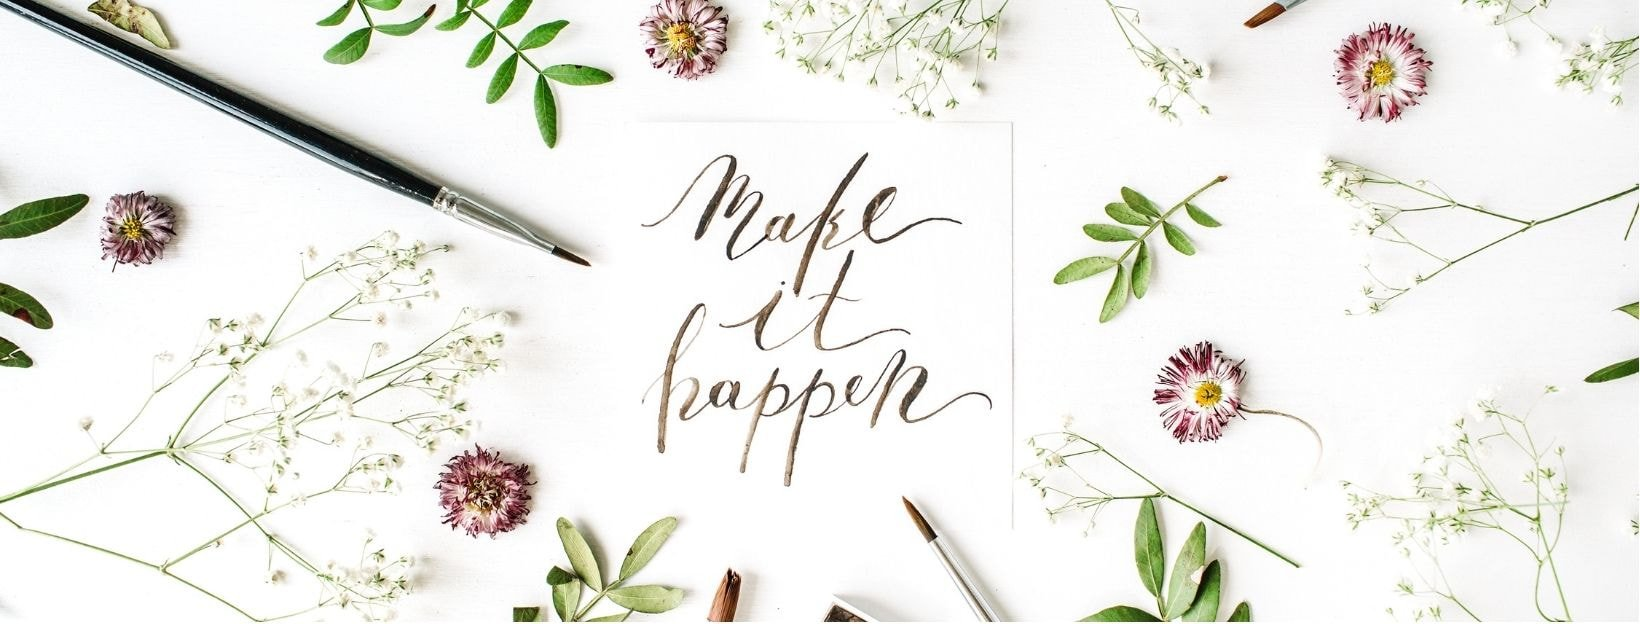 BANNER-Canva-MACdCWGKPDI-flat-lay-floral-composition-with-calligraphy-writing